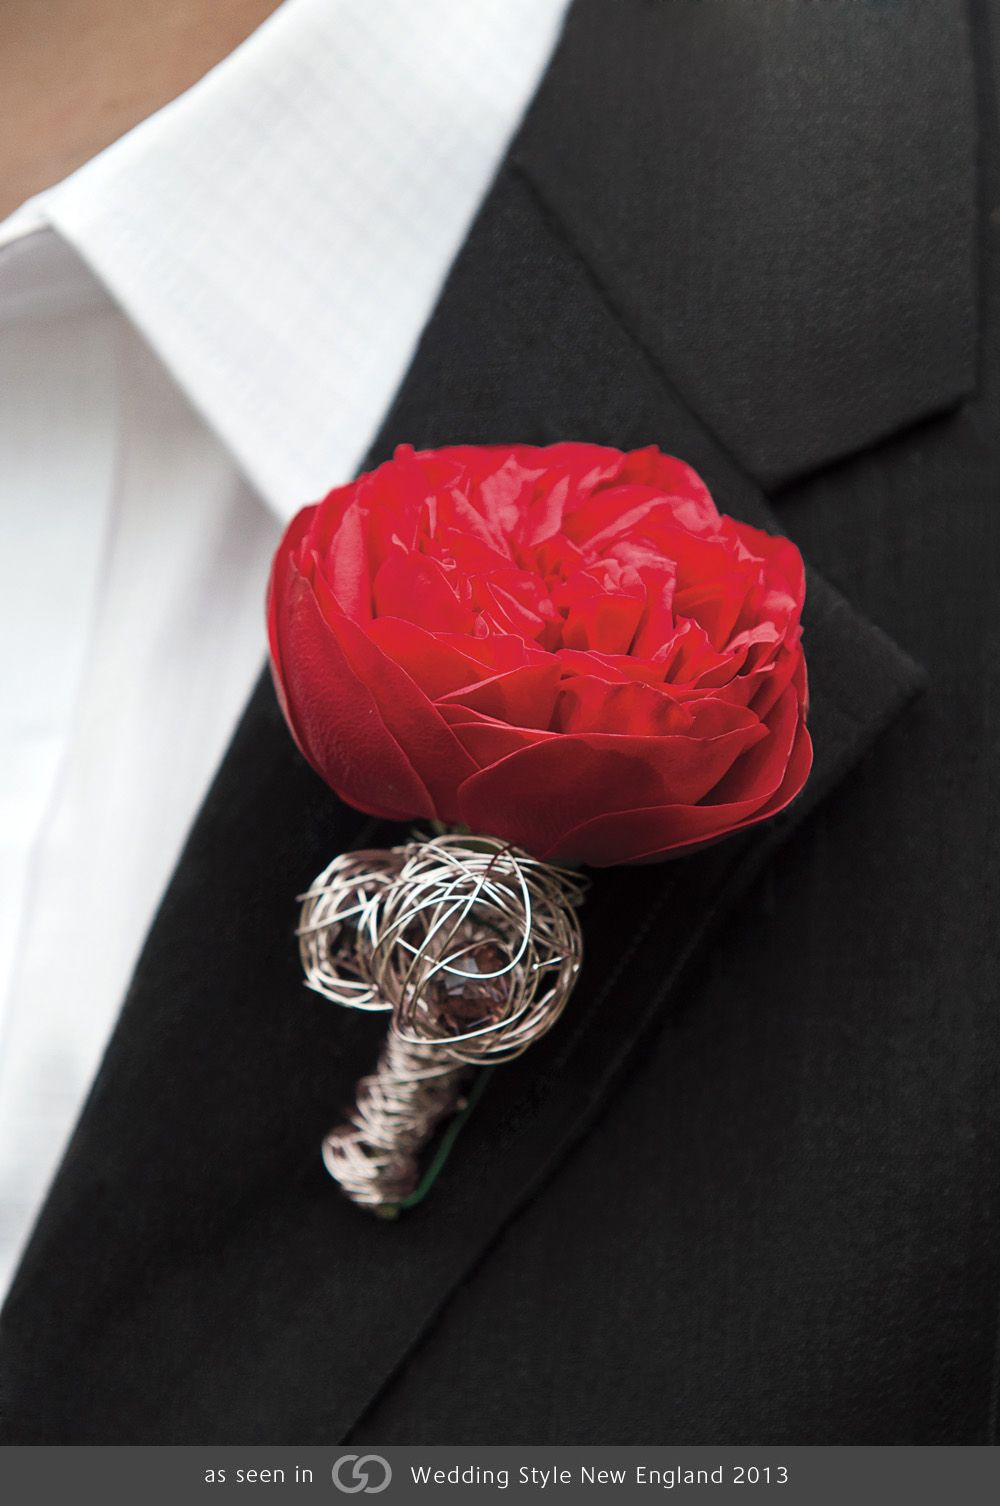 Garden rose with wire armature boutonniere. Very contemporary.